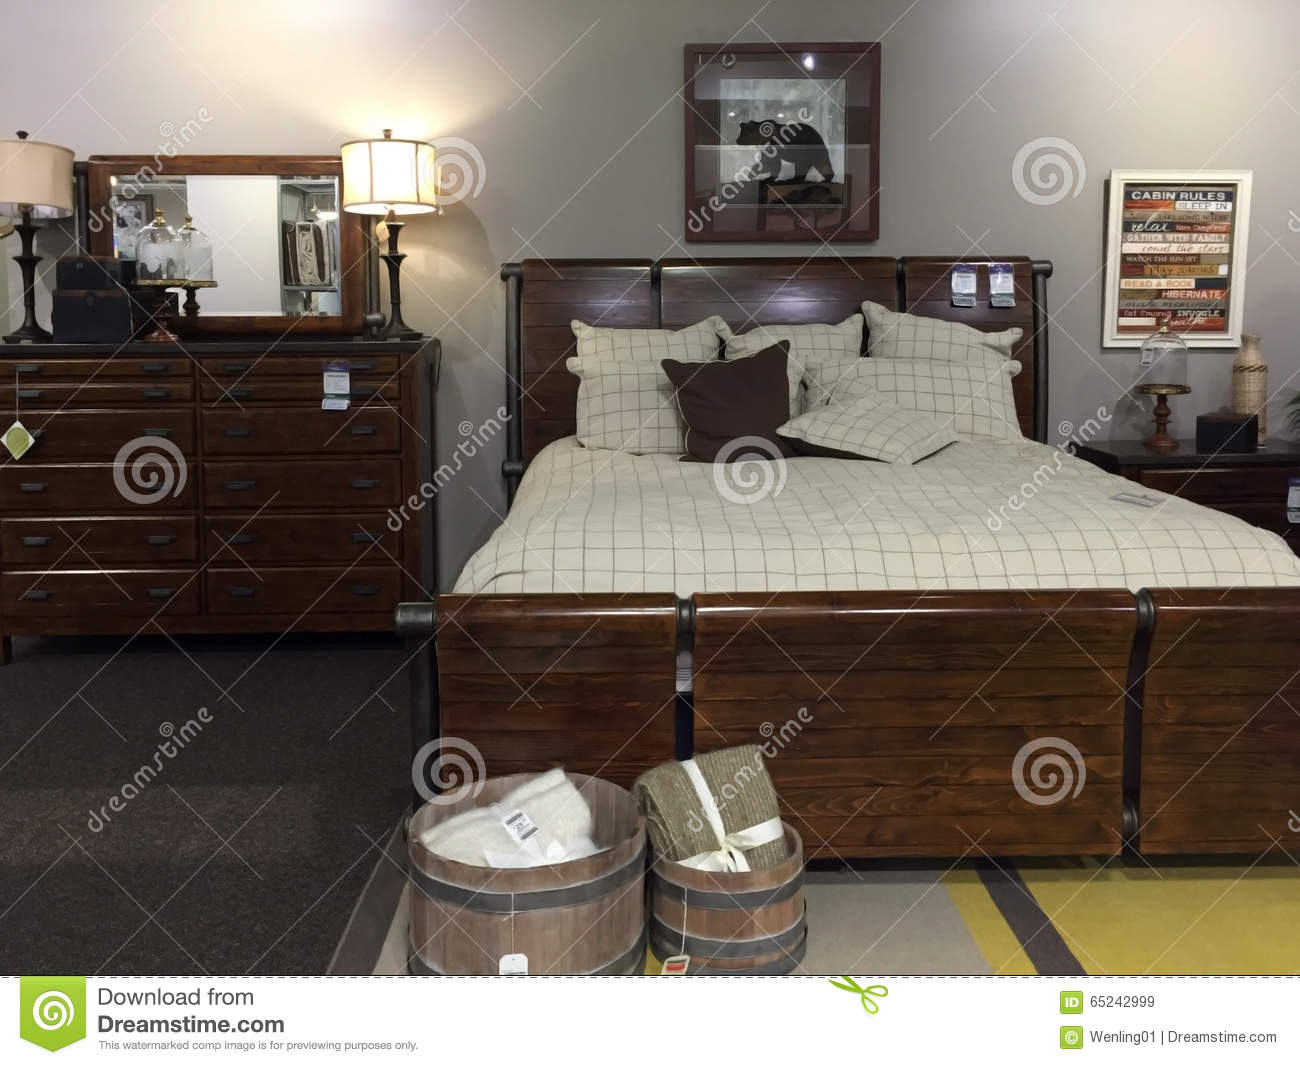 Nice bedroom furniture and furnishings selling editorial Nice bedroom furniture